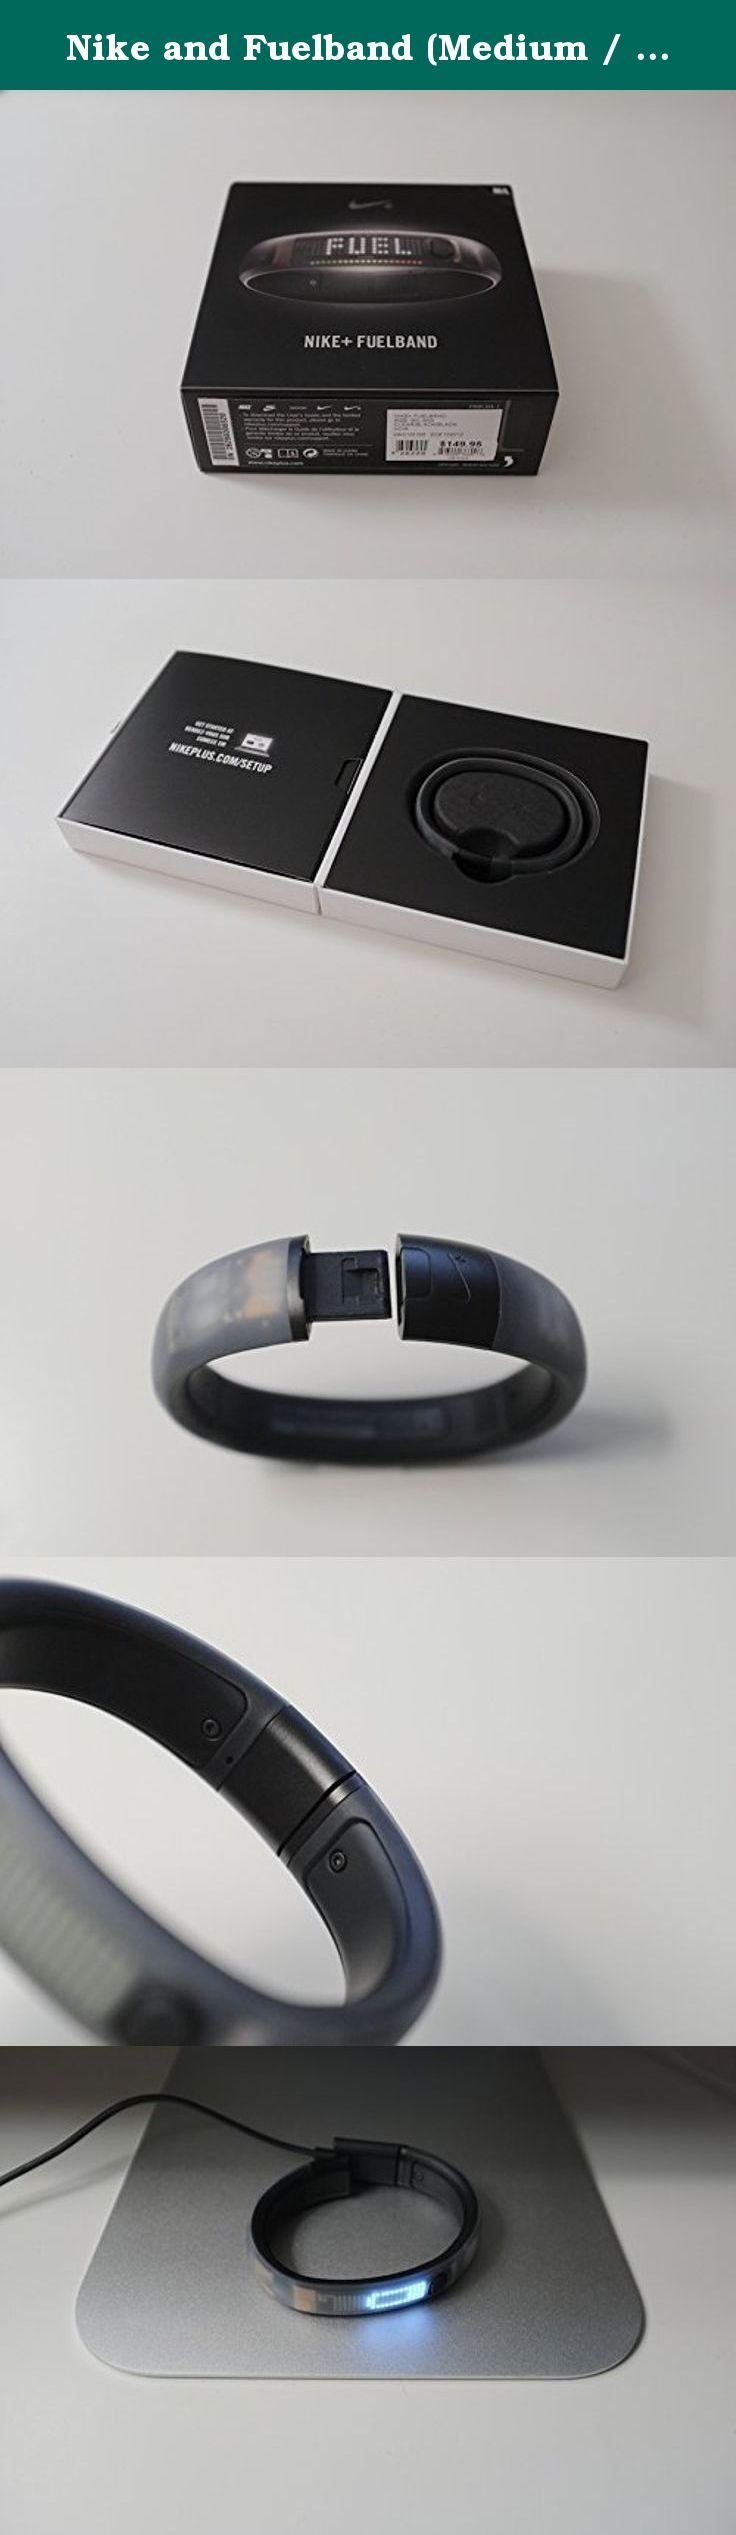 Nike and Fuelband (Medium / Large (172mm)) : Fast Shipping!!!. 1 day shipping by Fedex Through a sports-tested accelerometer, Nike+ FuelBand tracks your daily activity including running, walking, basketball, dancing and dozens of everyday activities. It tracks each step taken and calorie burned. It also tells the time of day. The Nike+ FuelBand is water resistant. It is safe to wear in the shower or when dancing in the rain. Since it's not waterproof, it's not recommended for use while...